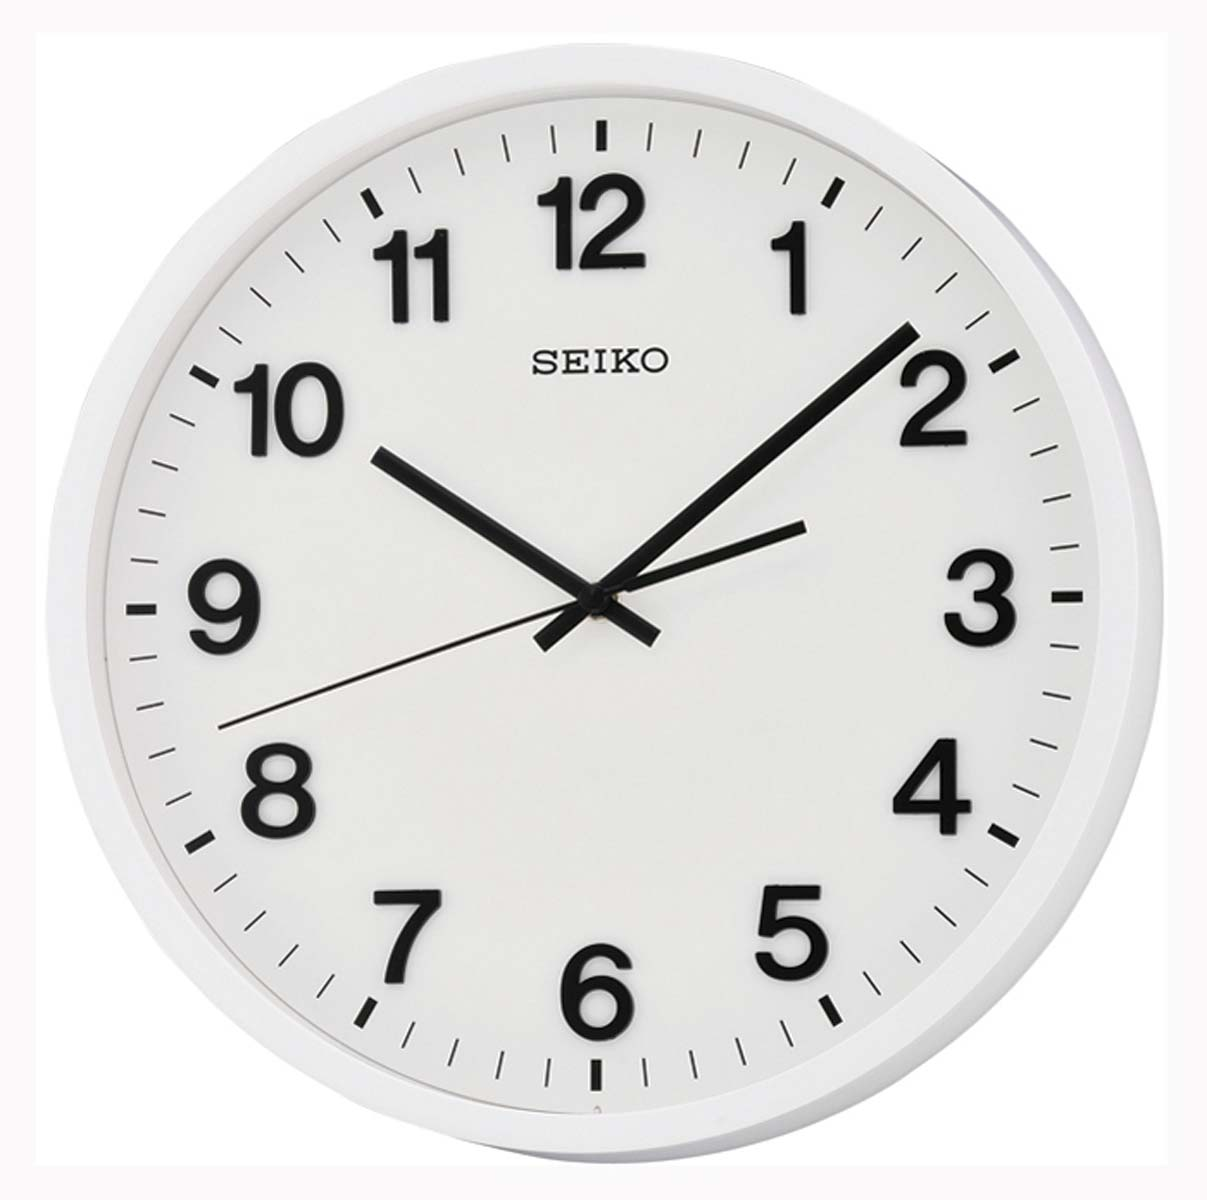 seiko qxa640w horloge murale horloge de bureau nouveau ebay. Black Bedroom Furniture Sets. Home Design Ideas